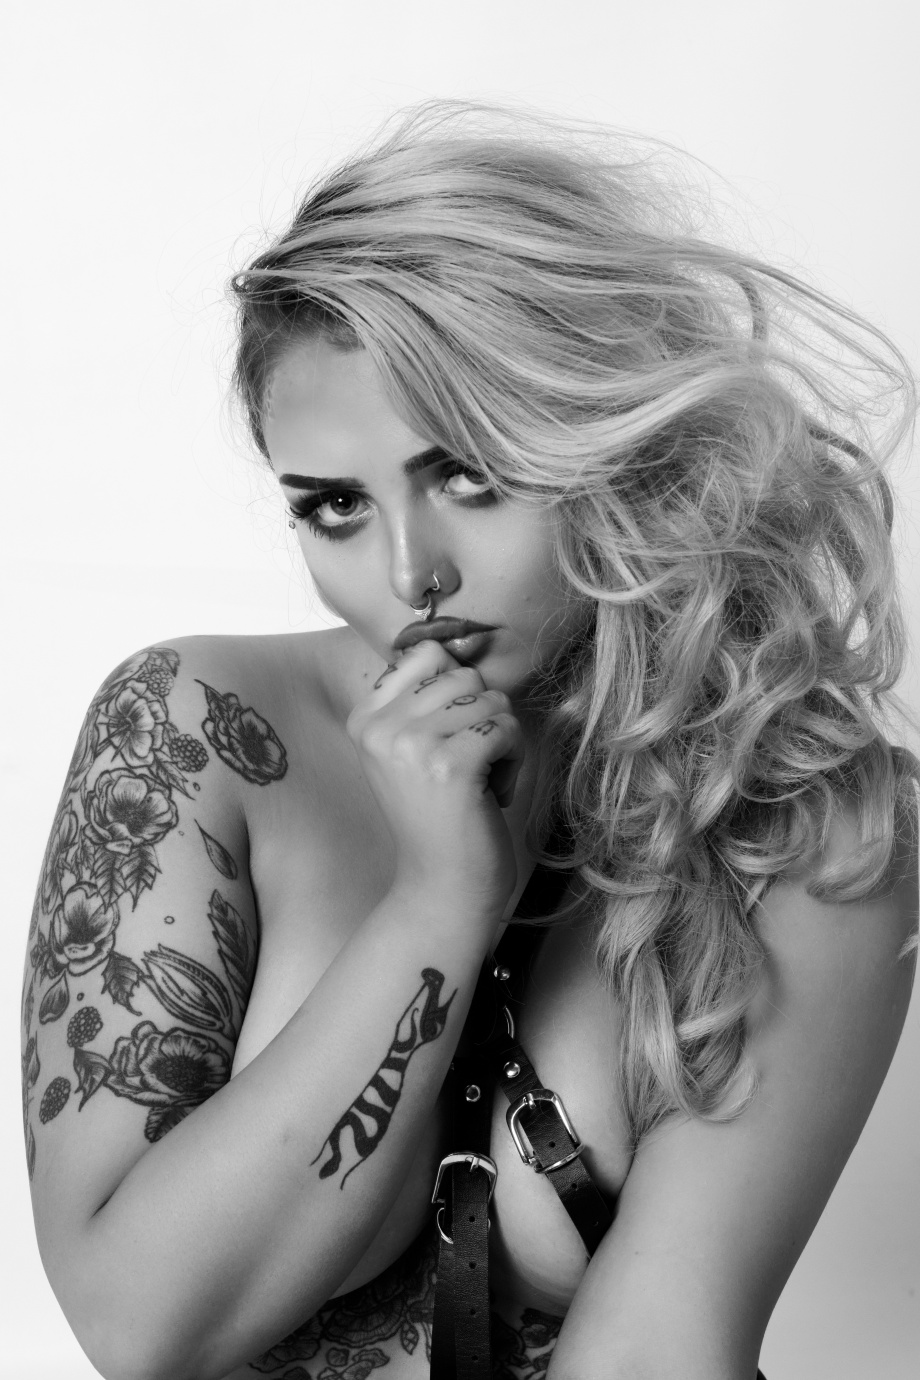 Katie Kitten, alternative, glamour, studio, tattoos, cork, ireland, black and white, topless, implied